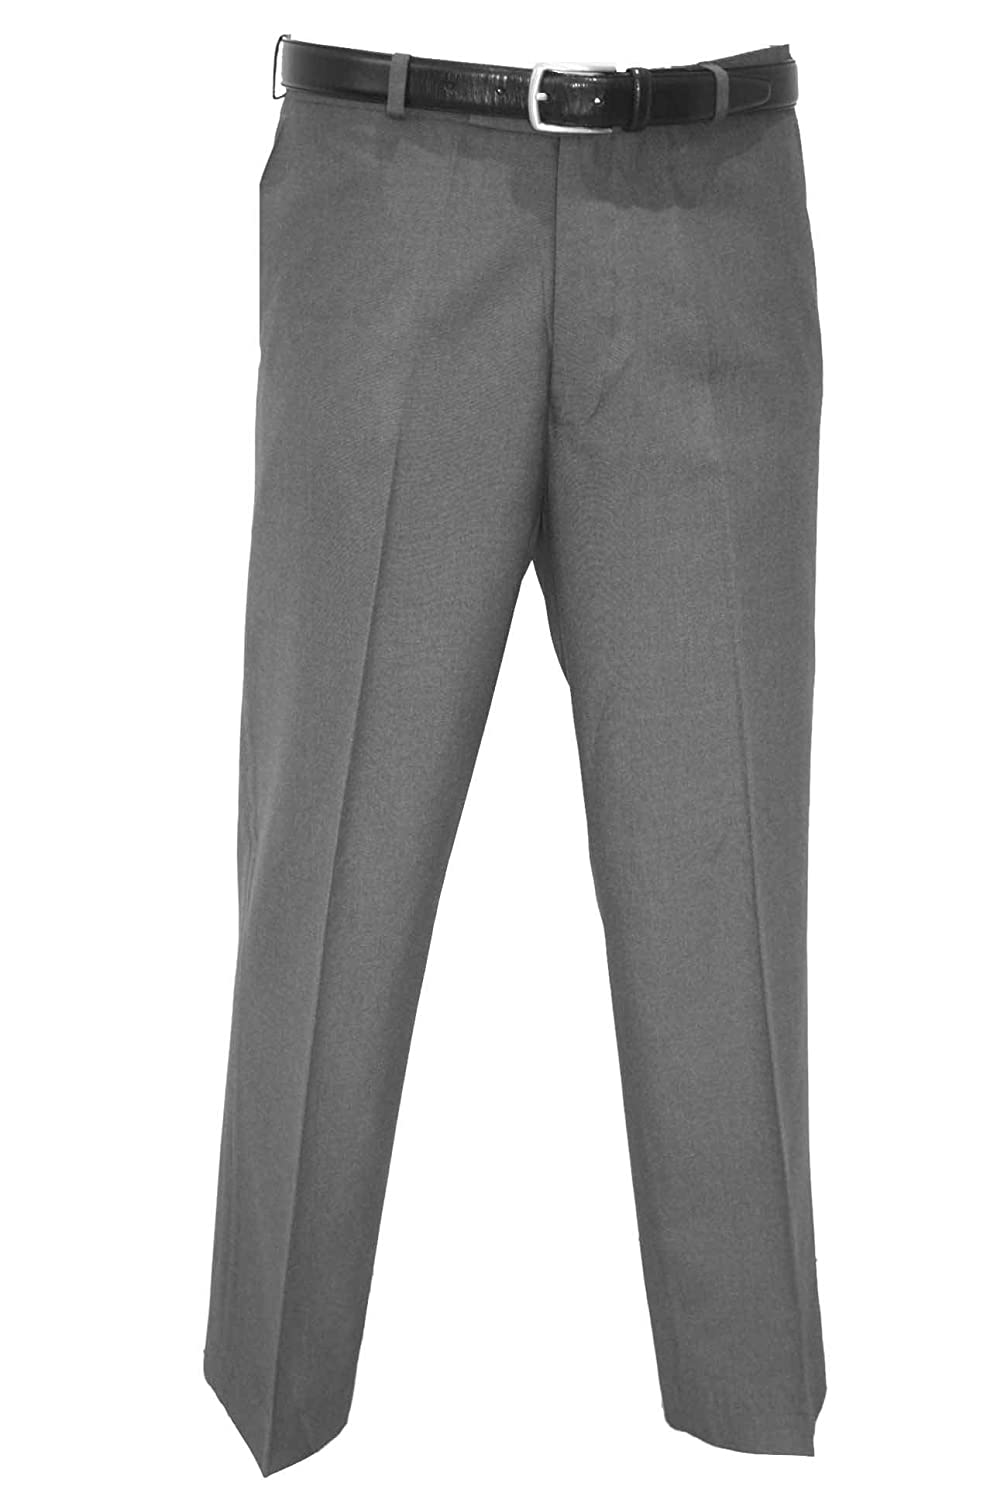 FREE POSTAGE. MENS CHARCOAL GREY TROUSER BY DURABLEPRESS. WAIST 30 TO 62. LEG LENGTHS 29,31 & 33 INCH.